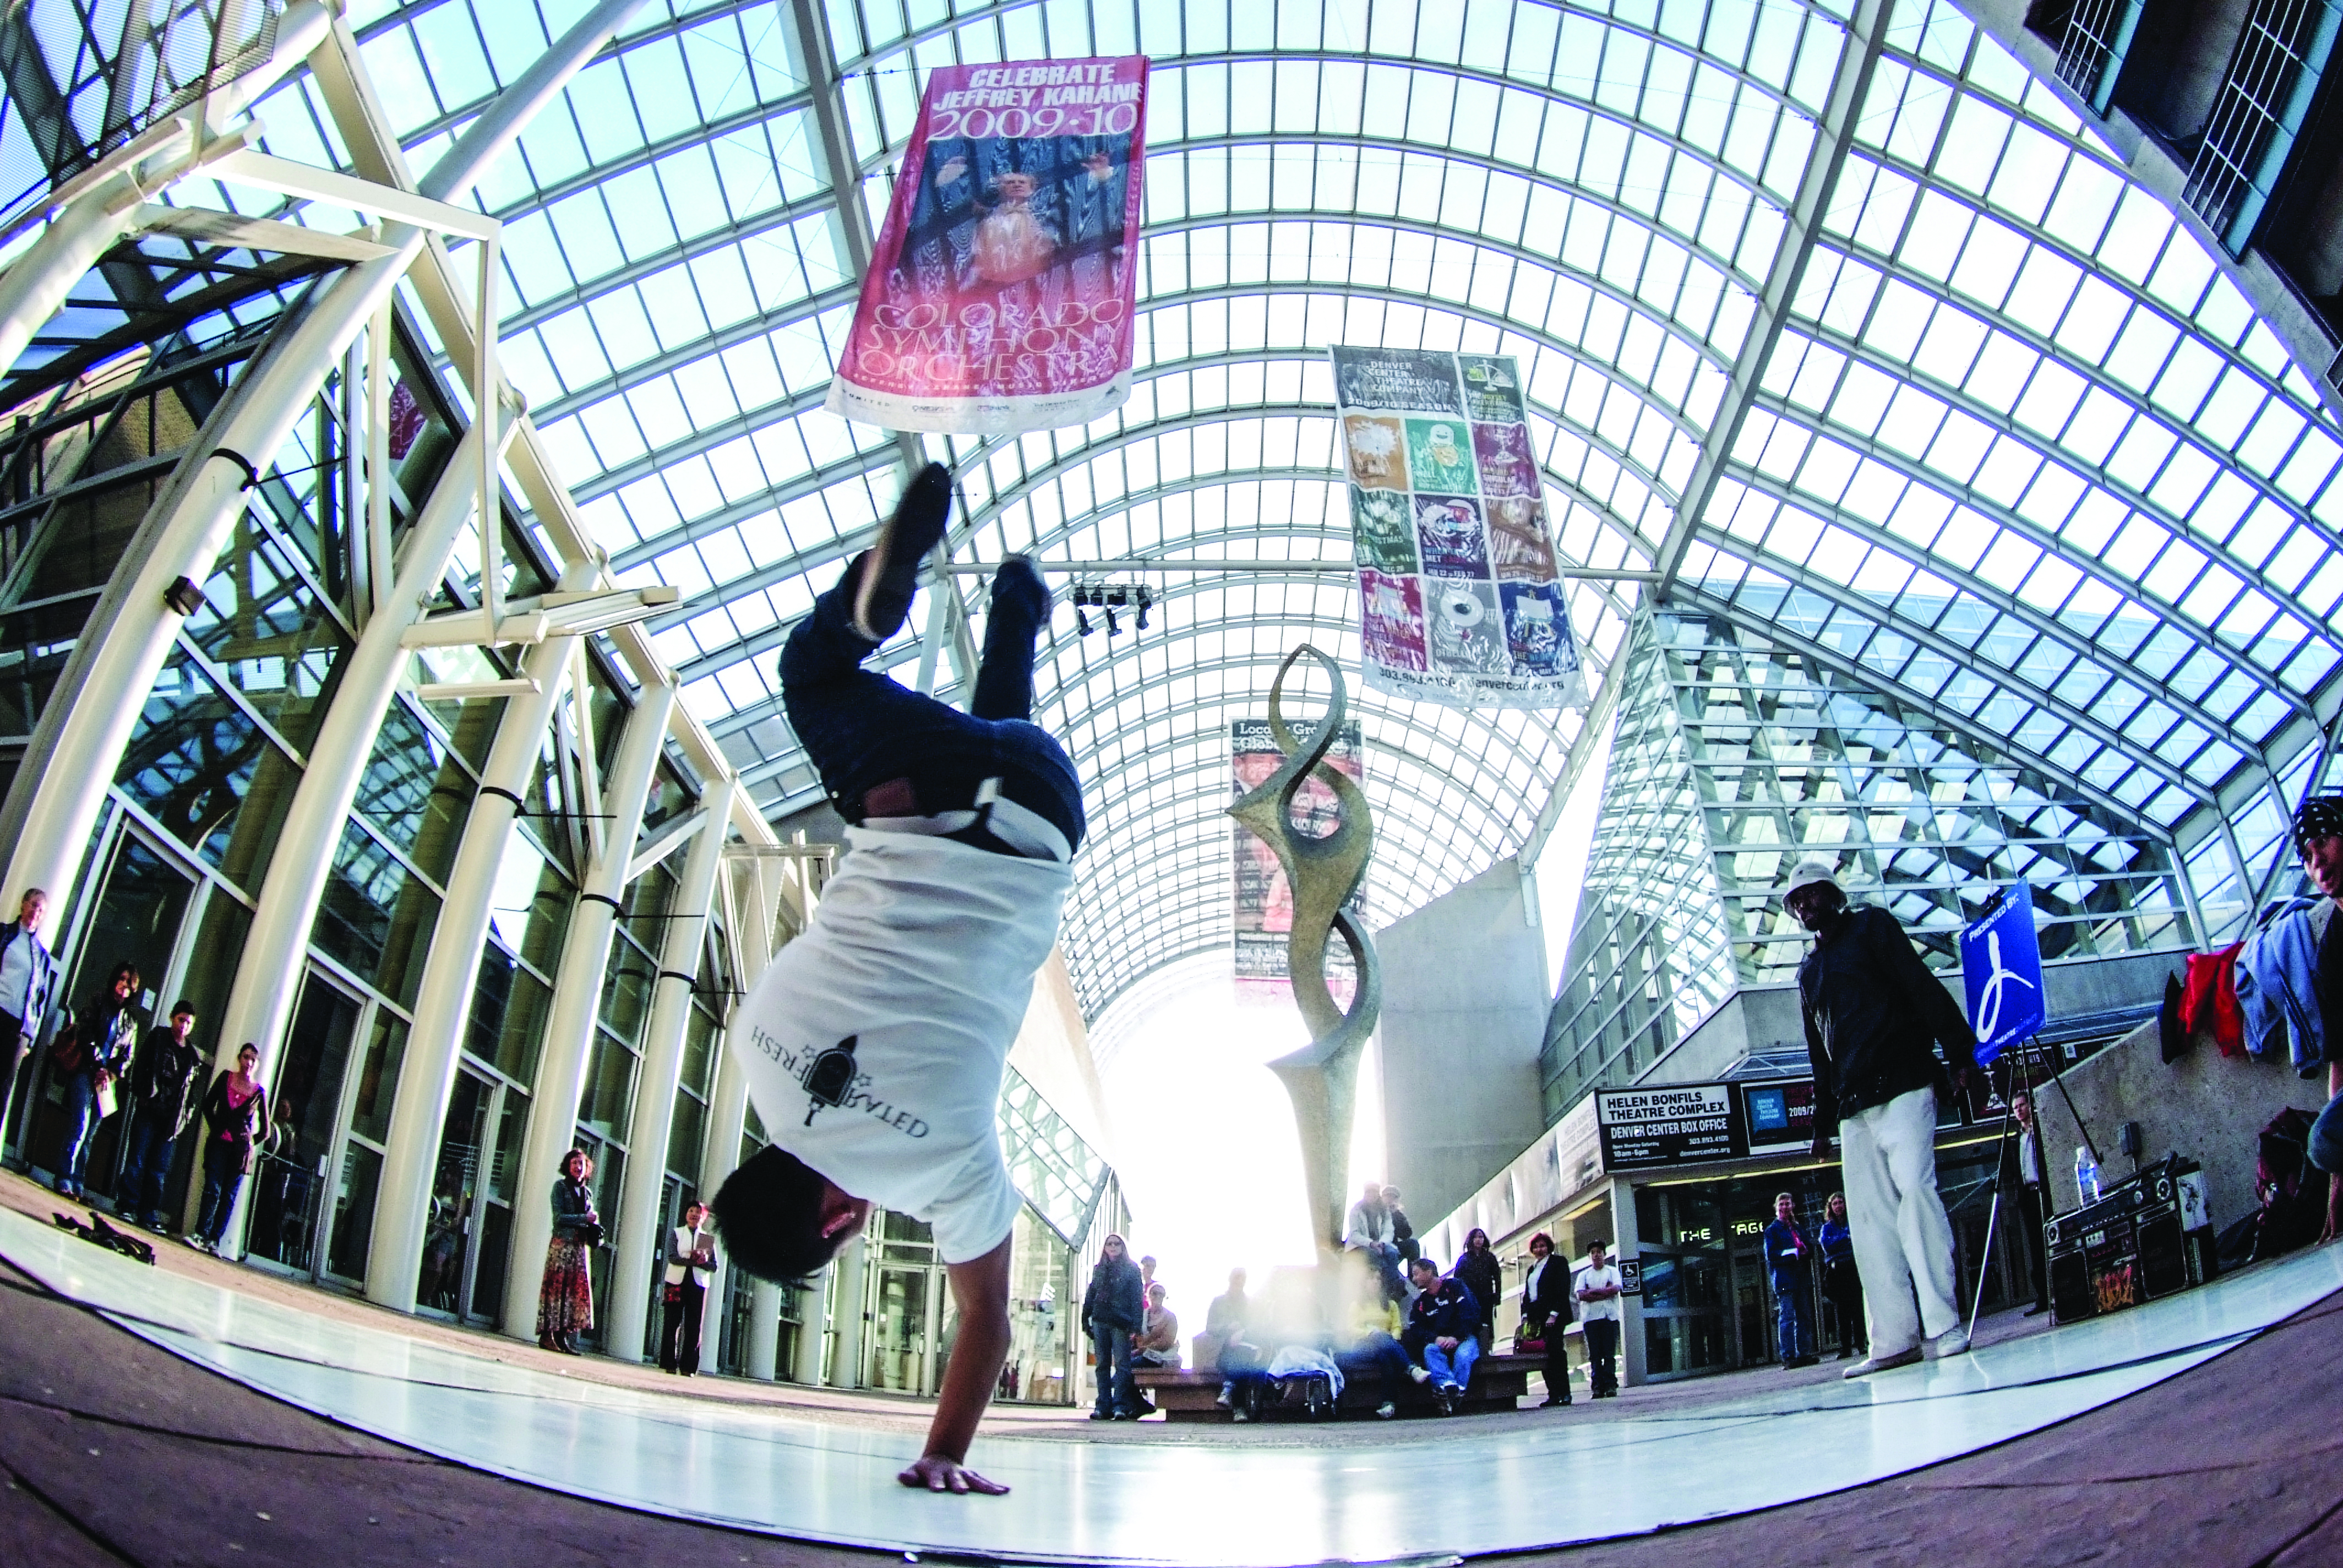 <p>Galleria Dancer at The Denver Center for the Performing Arts</p>